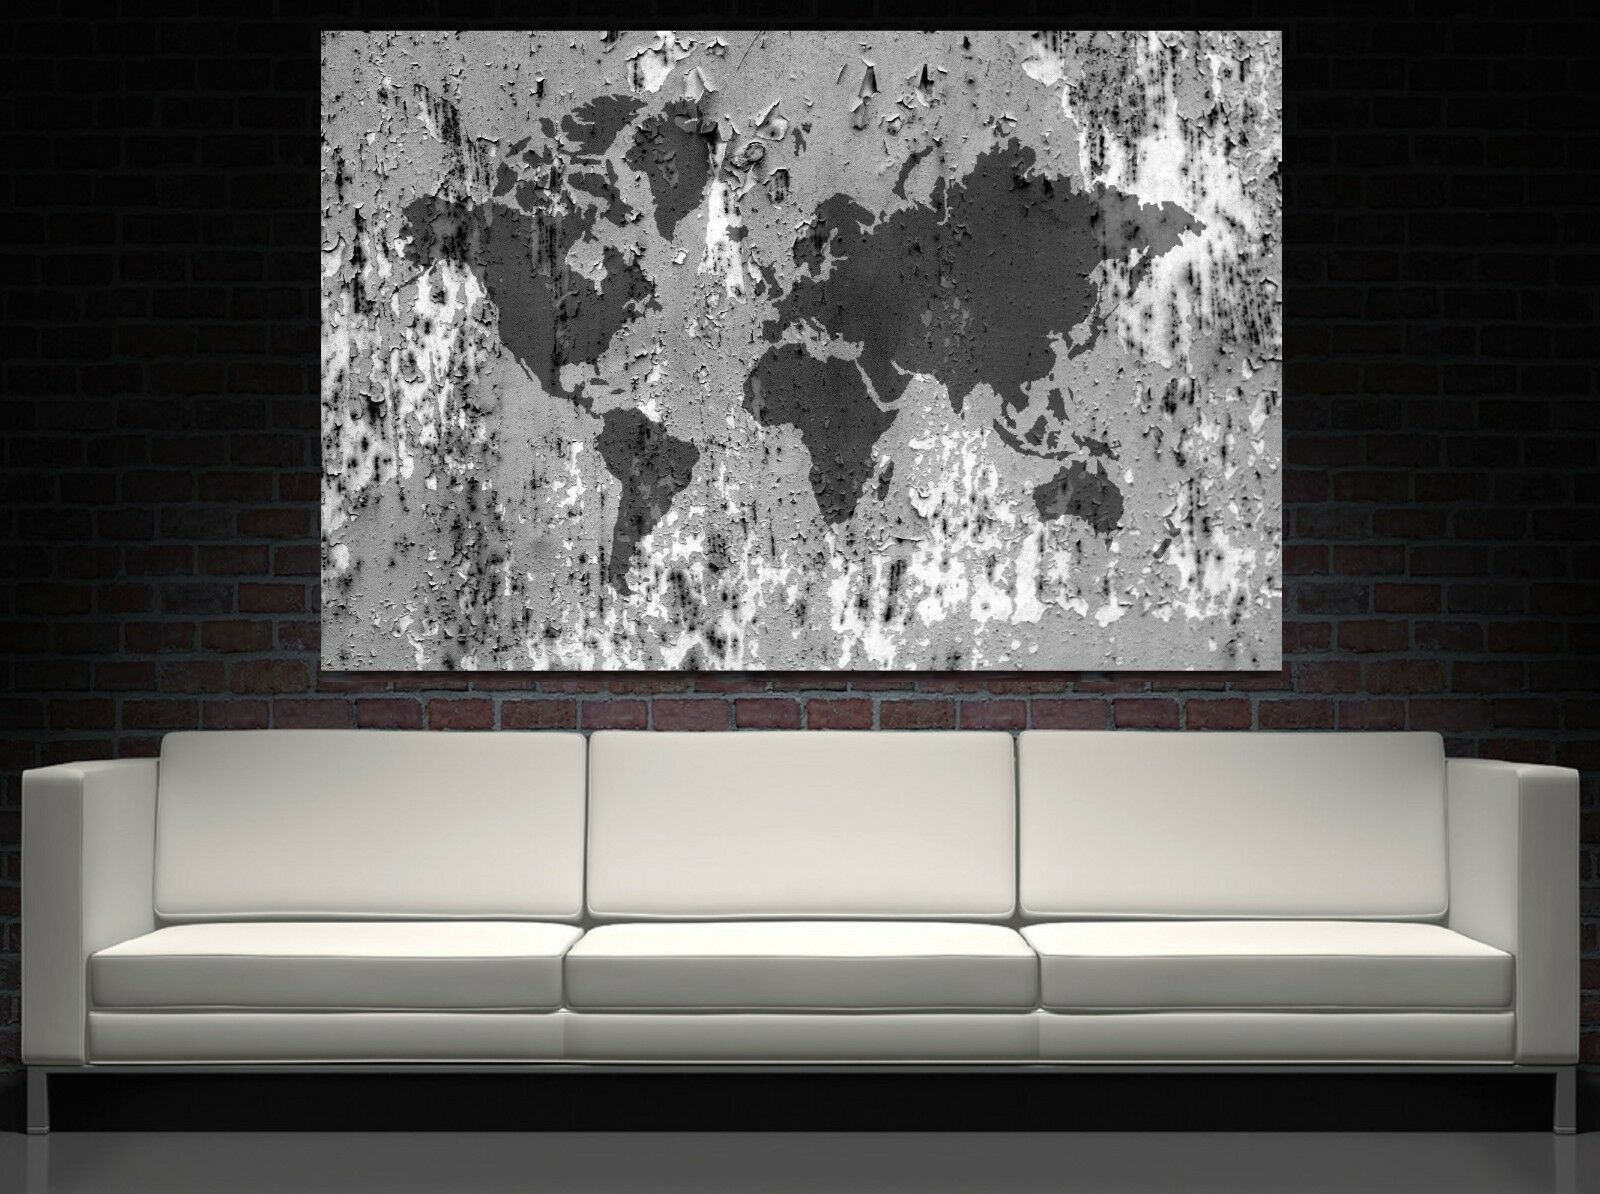 xxl bild 160x100x5 loft design leinwand weltkarte auf metall grau gem lde ikea eur 119 00. Black Bedroom Furniture Sets. Home Design Ideas